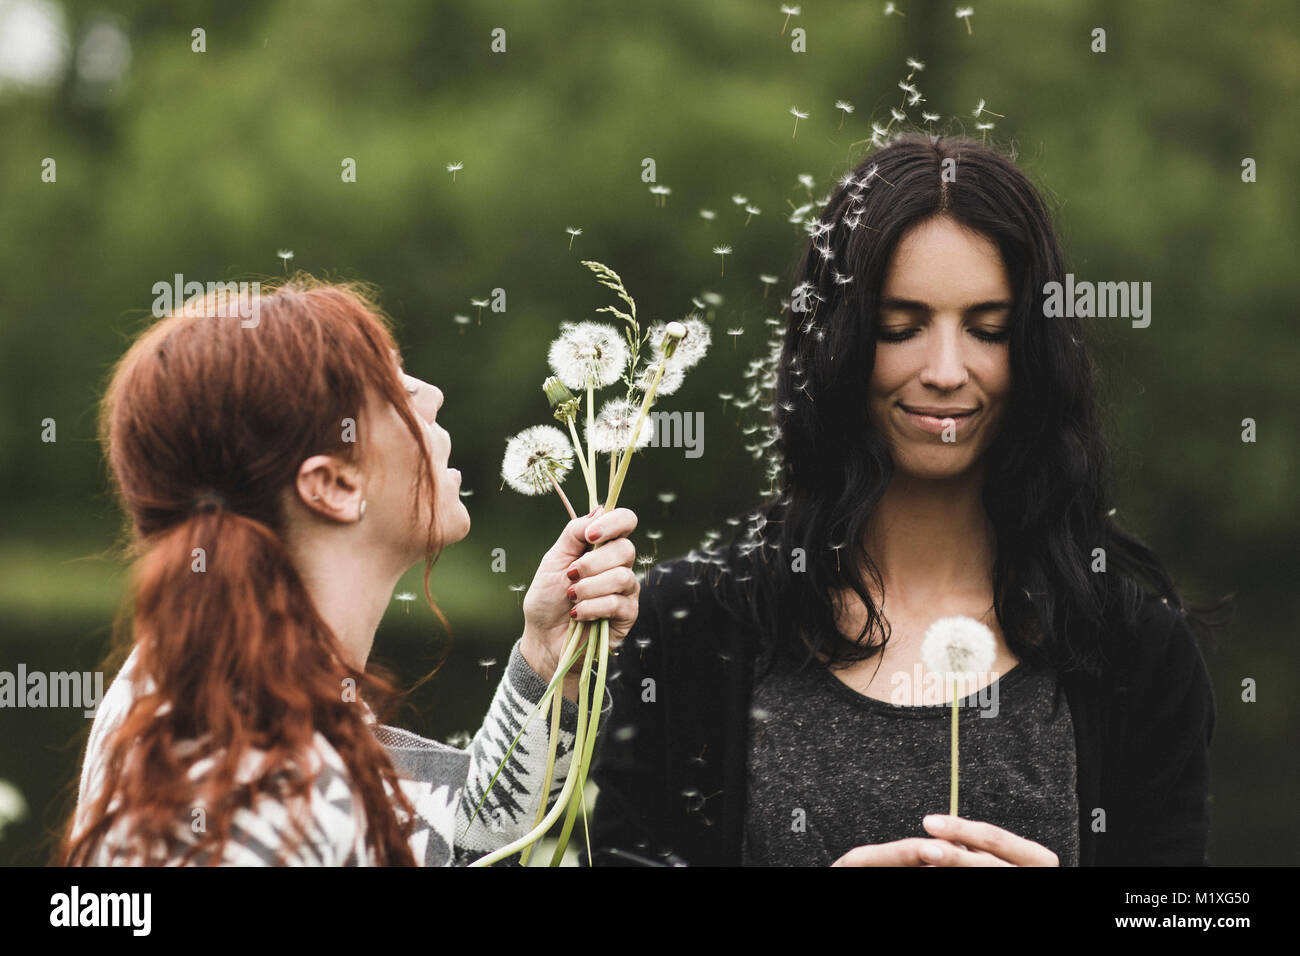 Young woman blowing dandelions at friend in Sweden - Stock Image